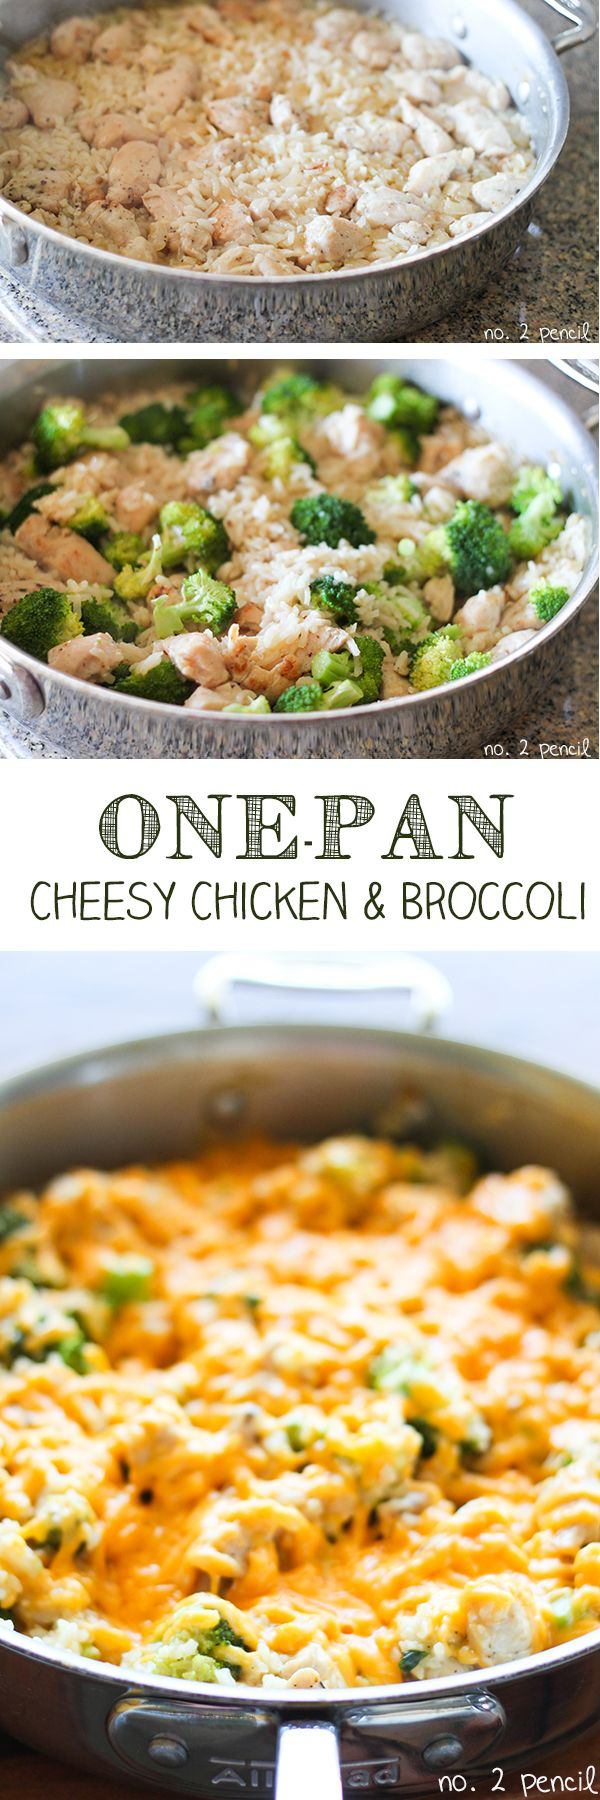 One-Pan Cheesy Chicken and Broccoli - cook everything in the same pan, even the rice!